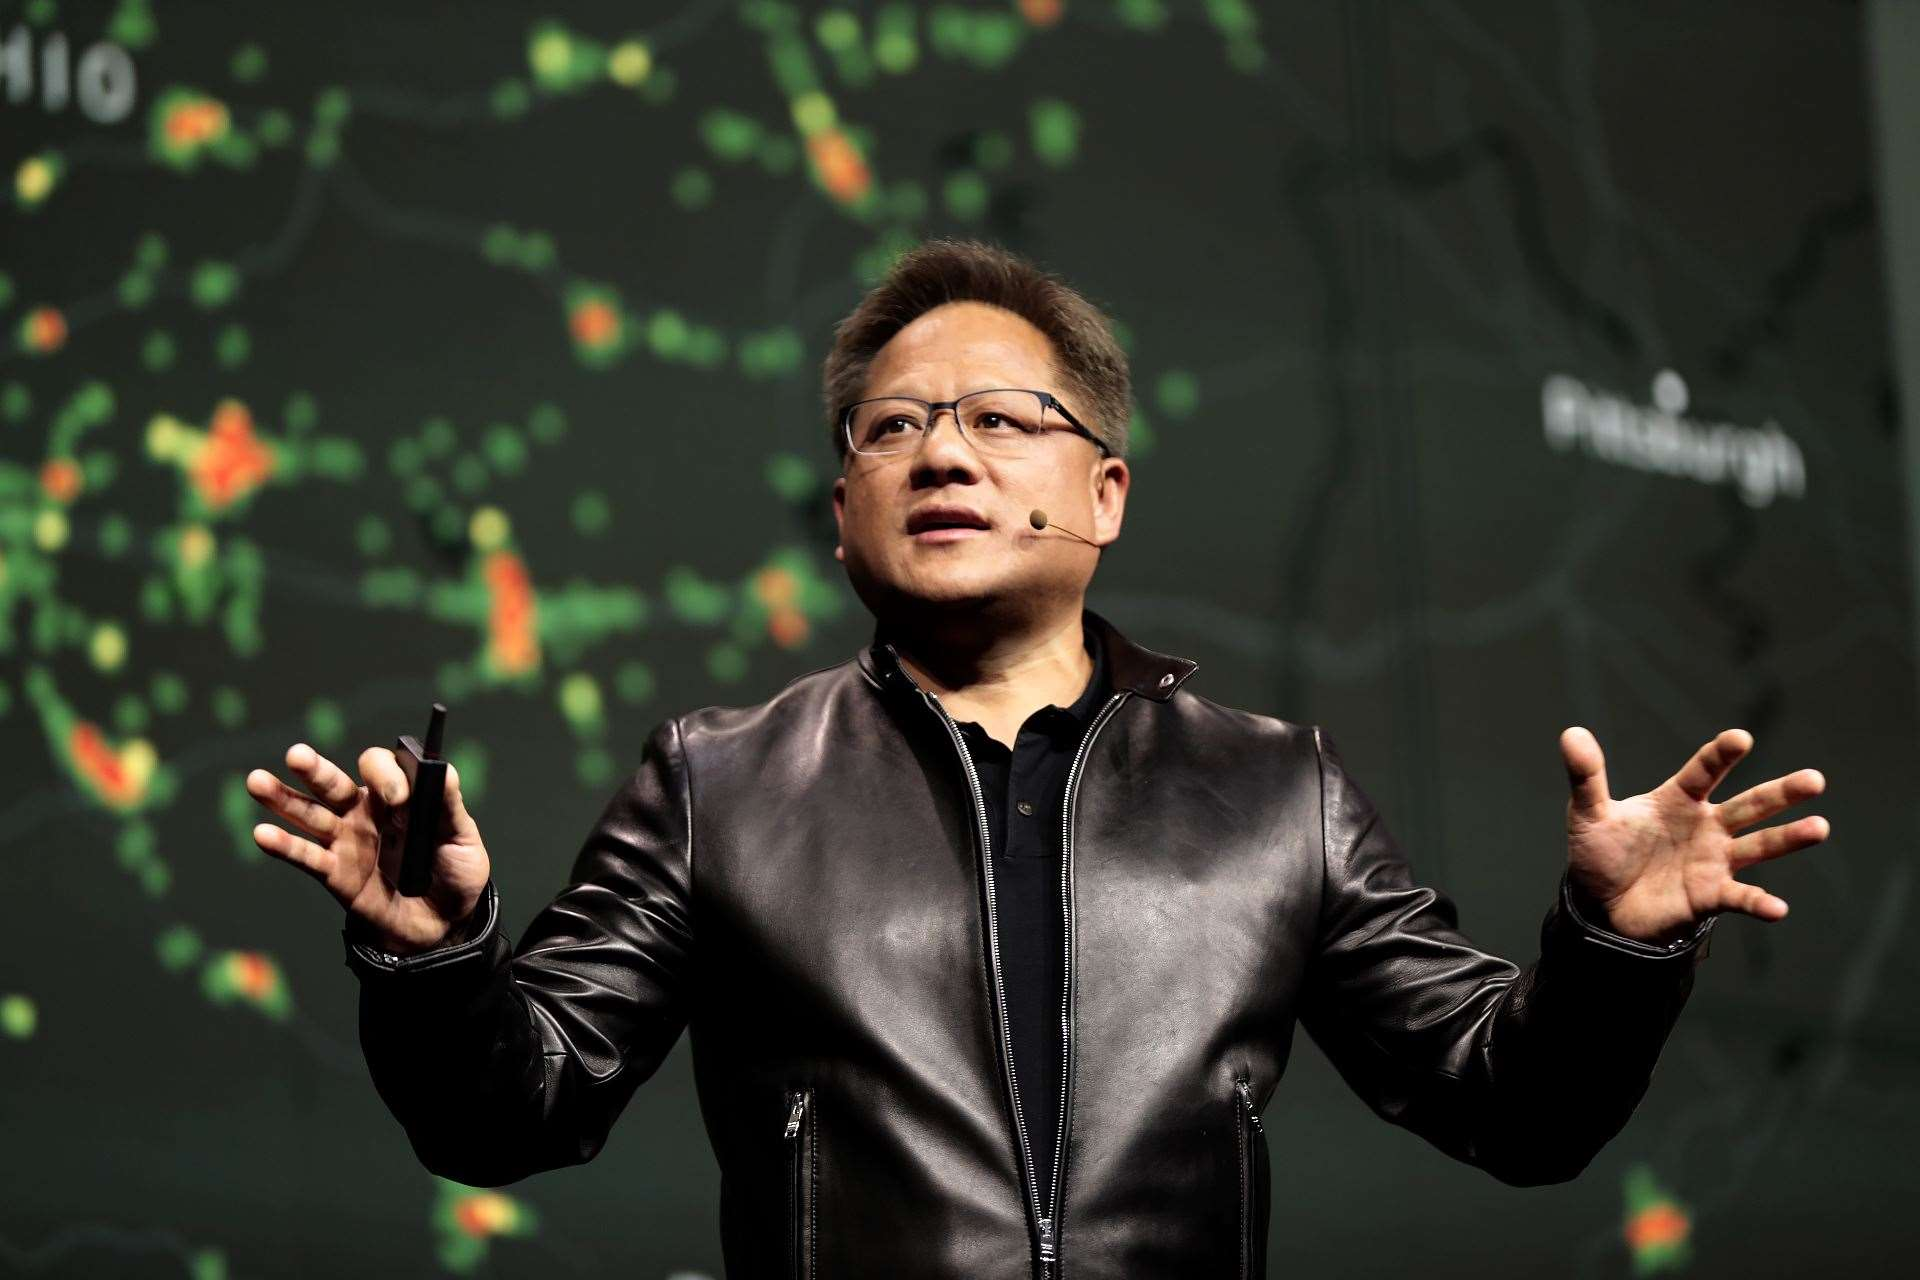 Jensen Huang, CEO and founder of NVIDIA. Picture: NVIDIA